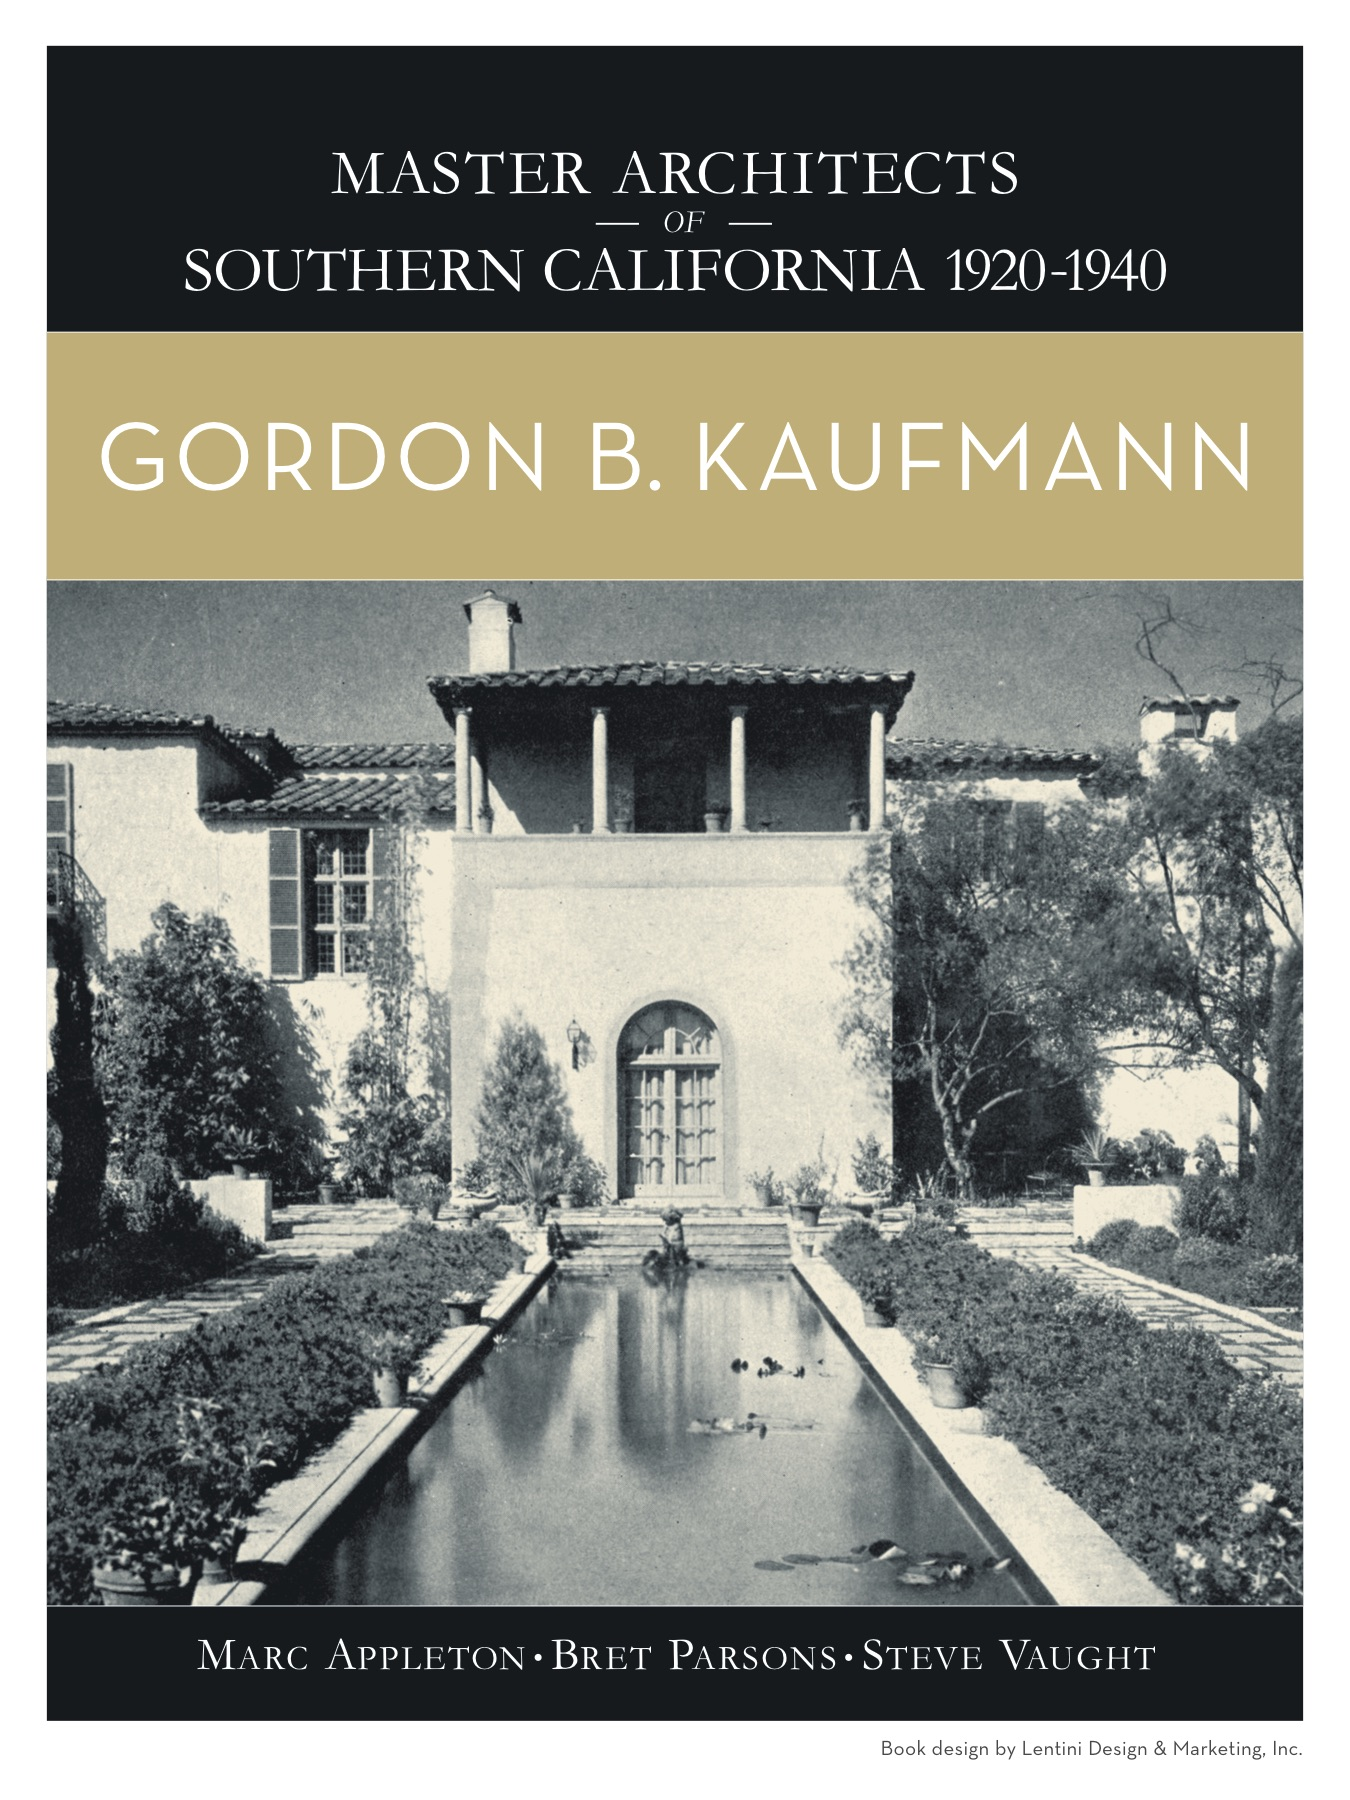 L.A.'s Master Architects